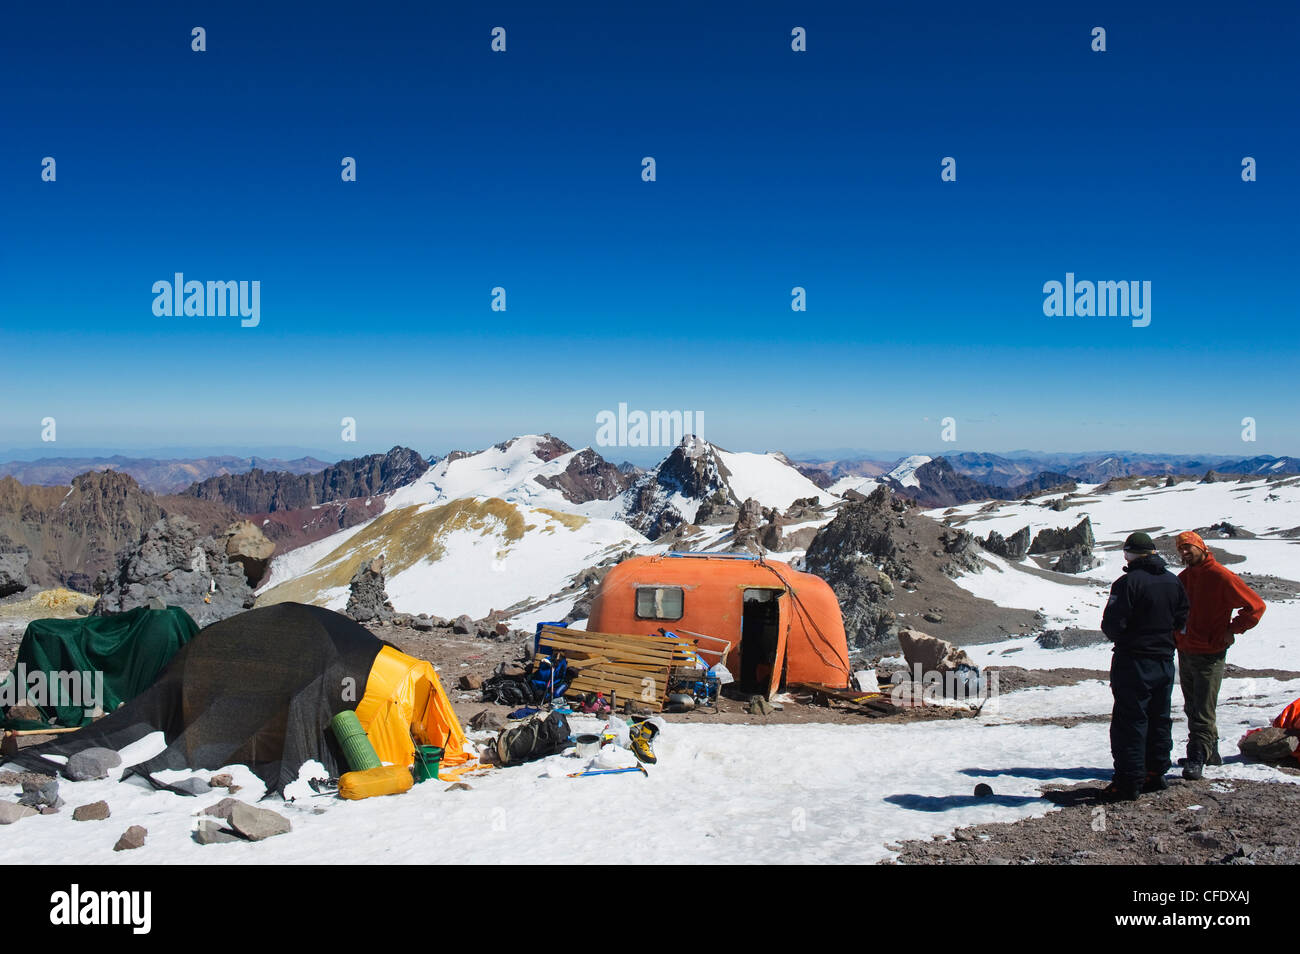 Nido del Condores campsite on Aconcagua, Aconcagua Provincial Park, Andes mountains, Argentina - Stock Image